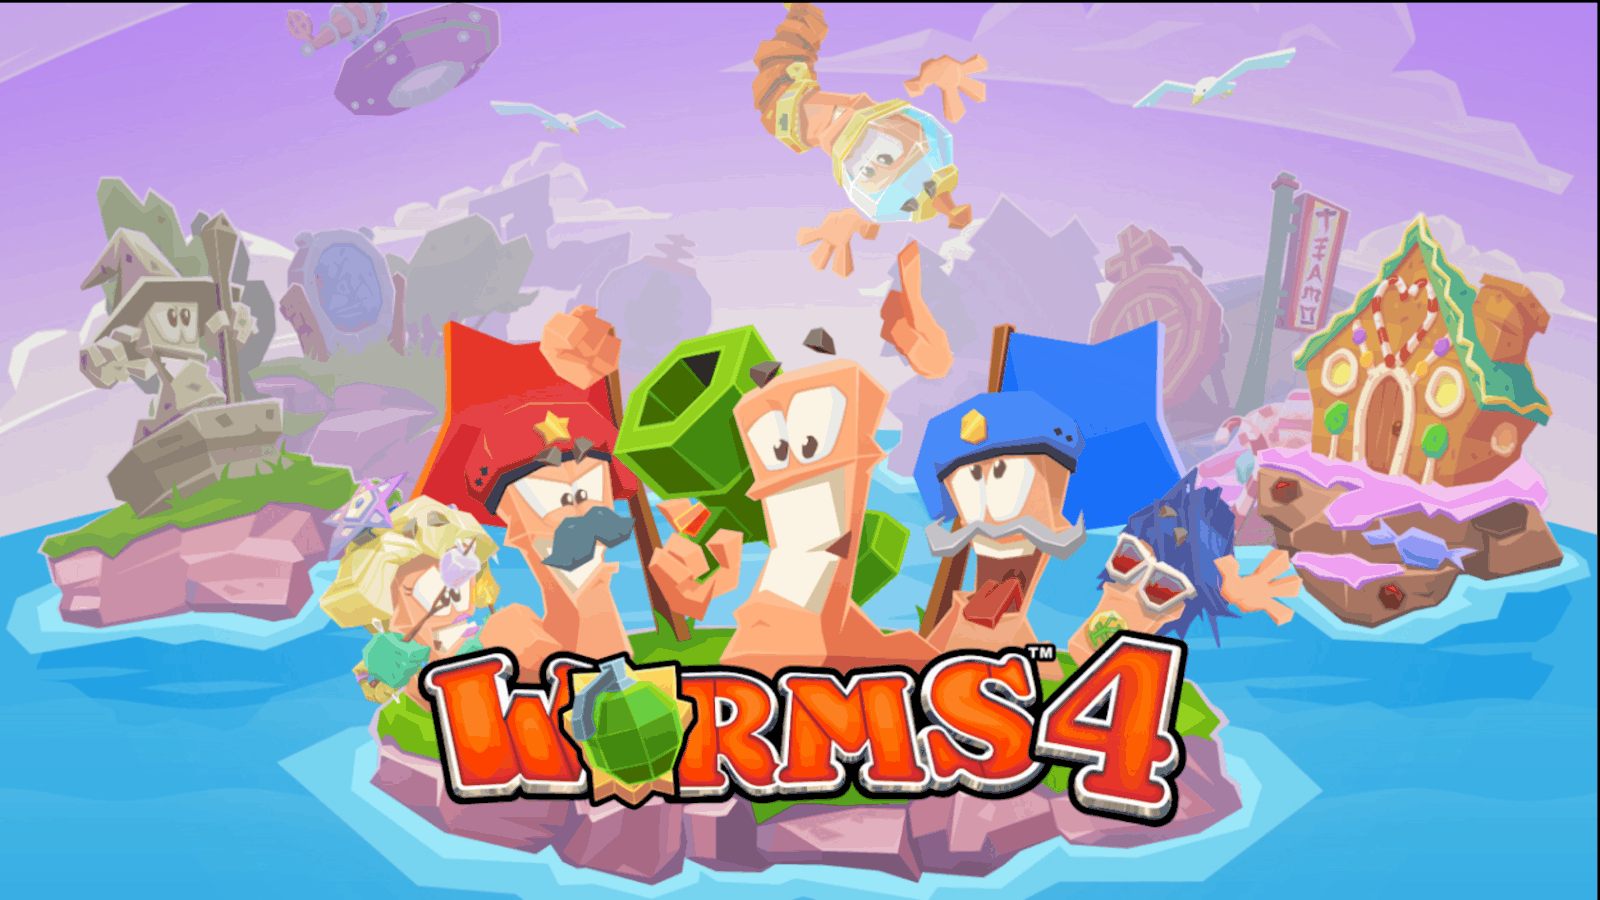 Worms 4 Play Store Banner